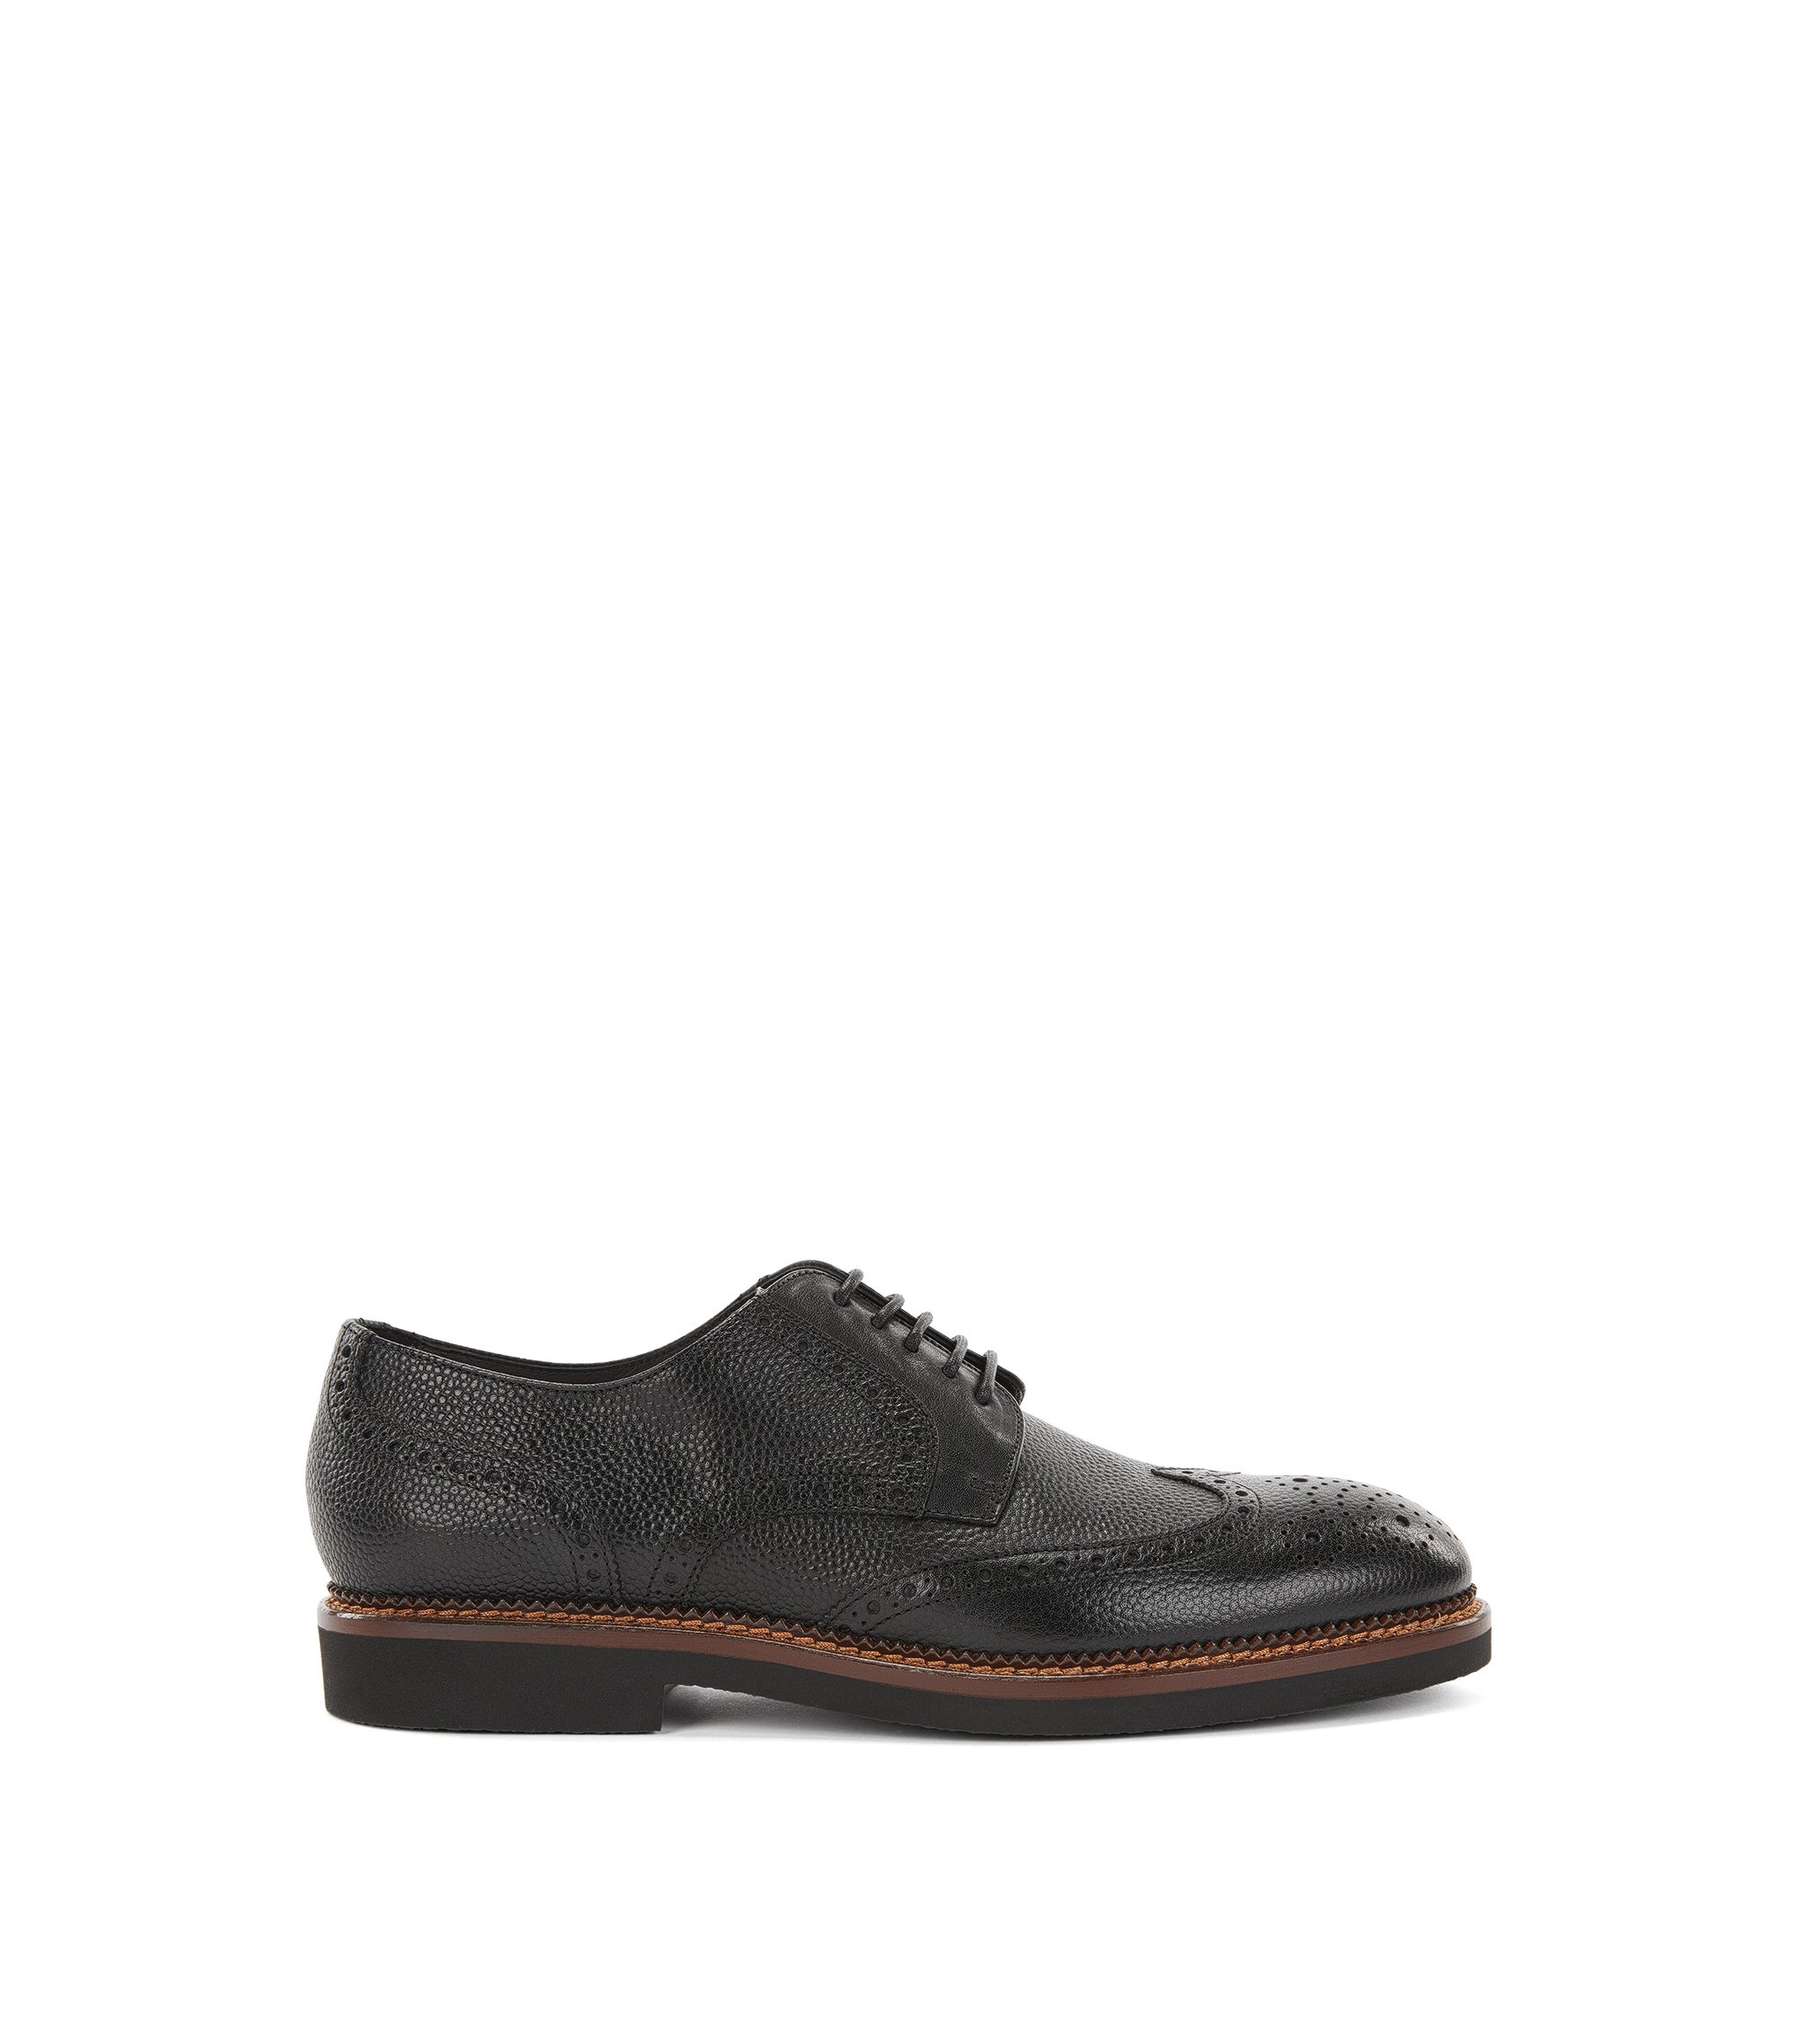 Lace-up brogue shoes in grained leather, Black